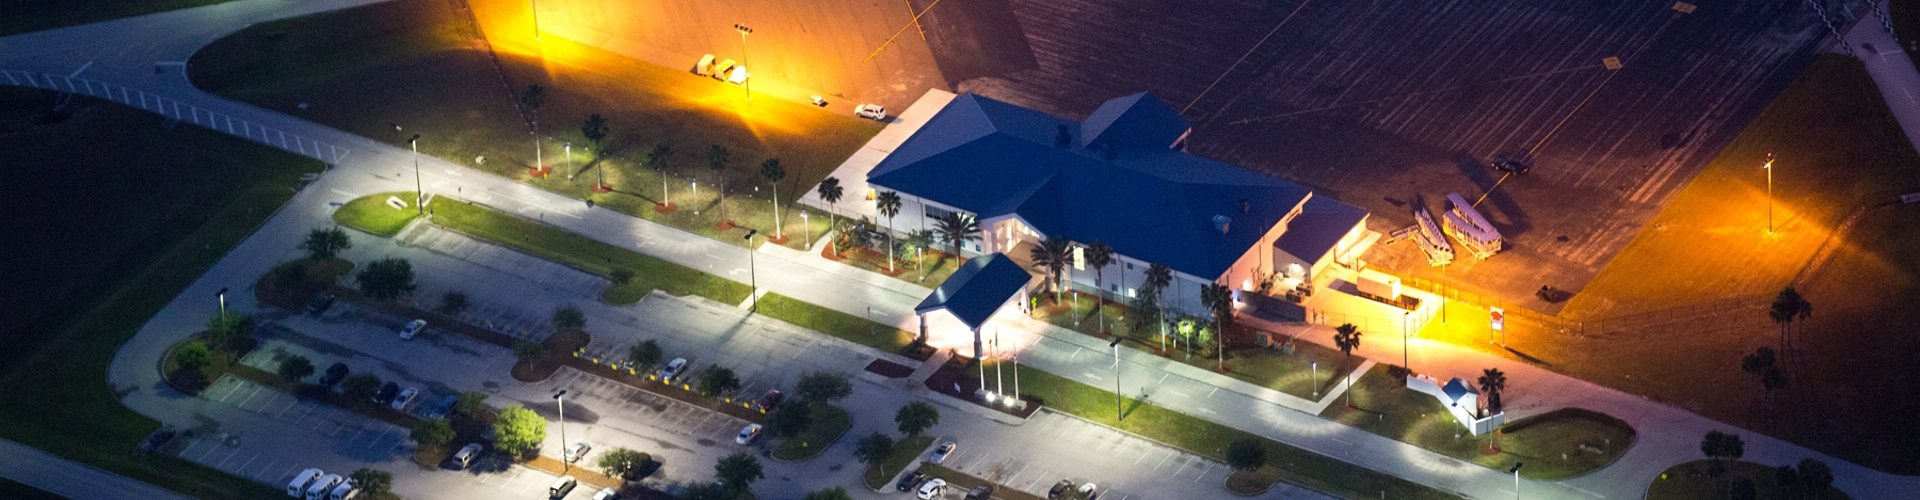 Night time image of Lakeland Airport Offices